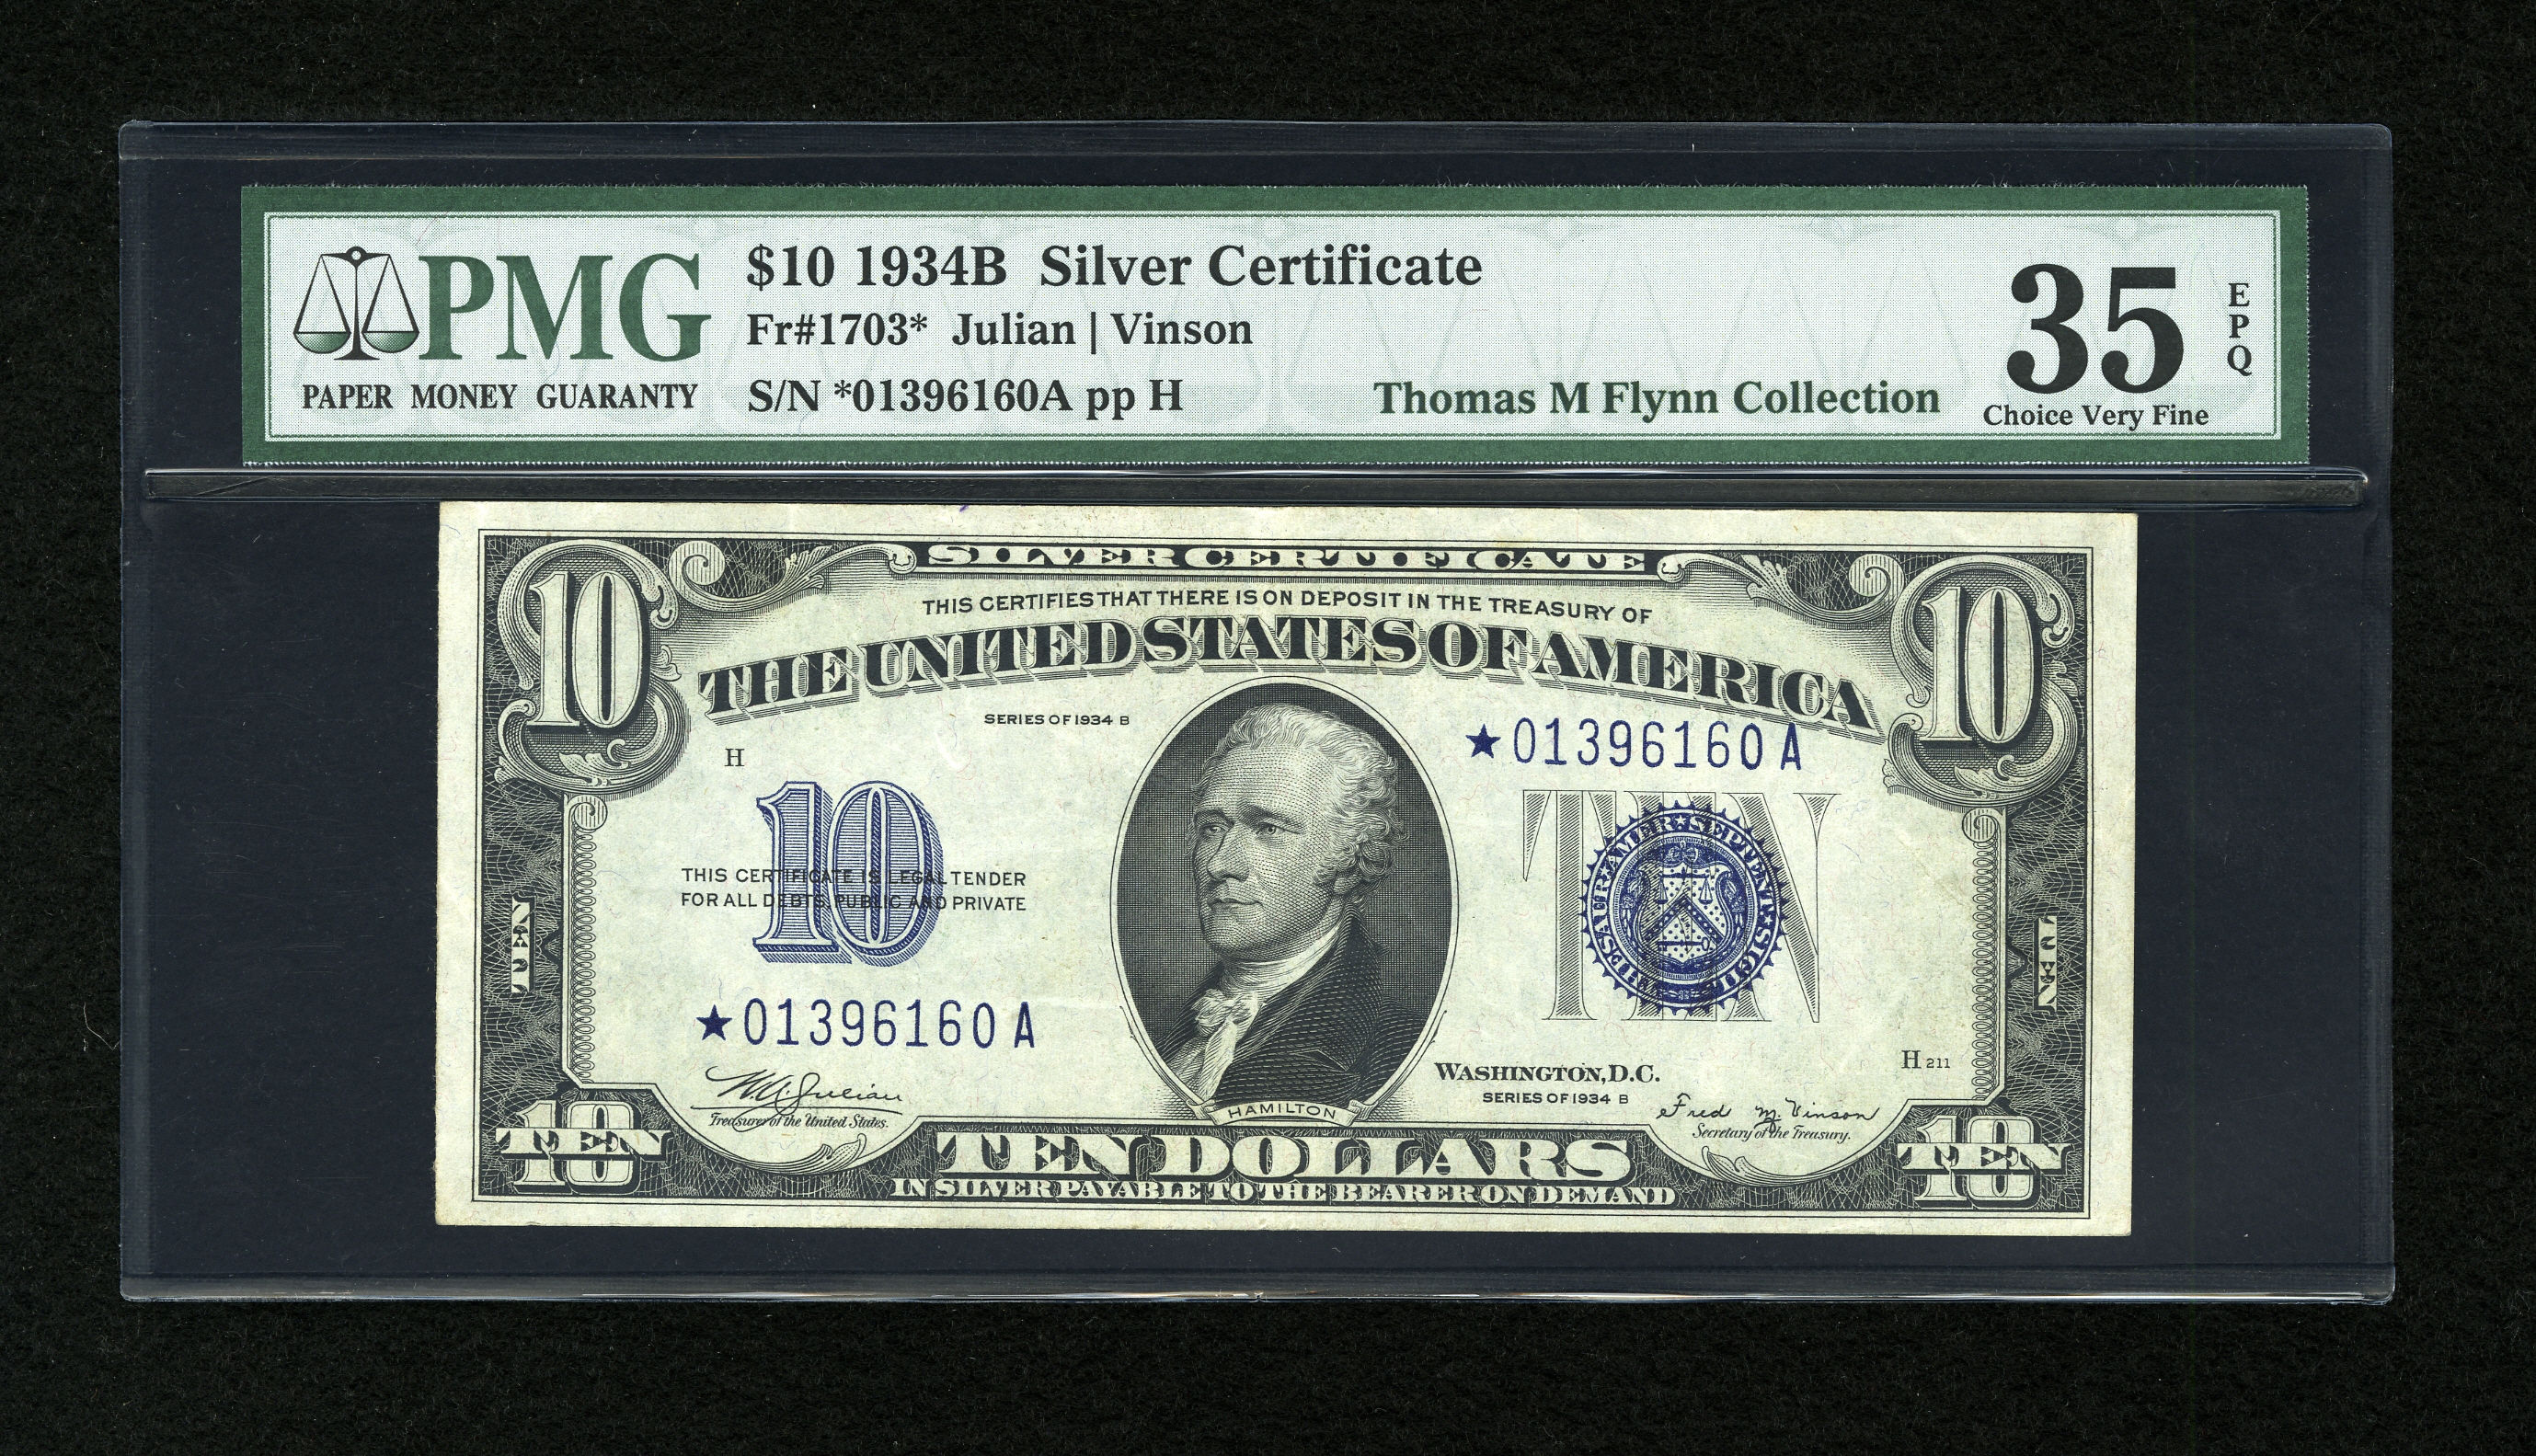 Fr. 1703* 1934B $10 Silver Certificate Star Note PMG Choice Very Fine 35 Heritage Auctions